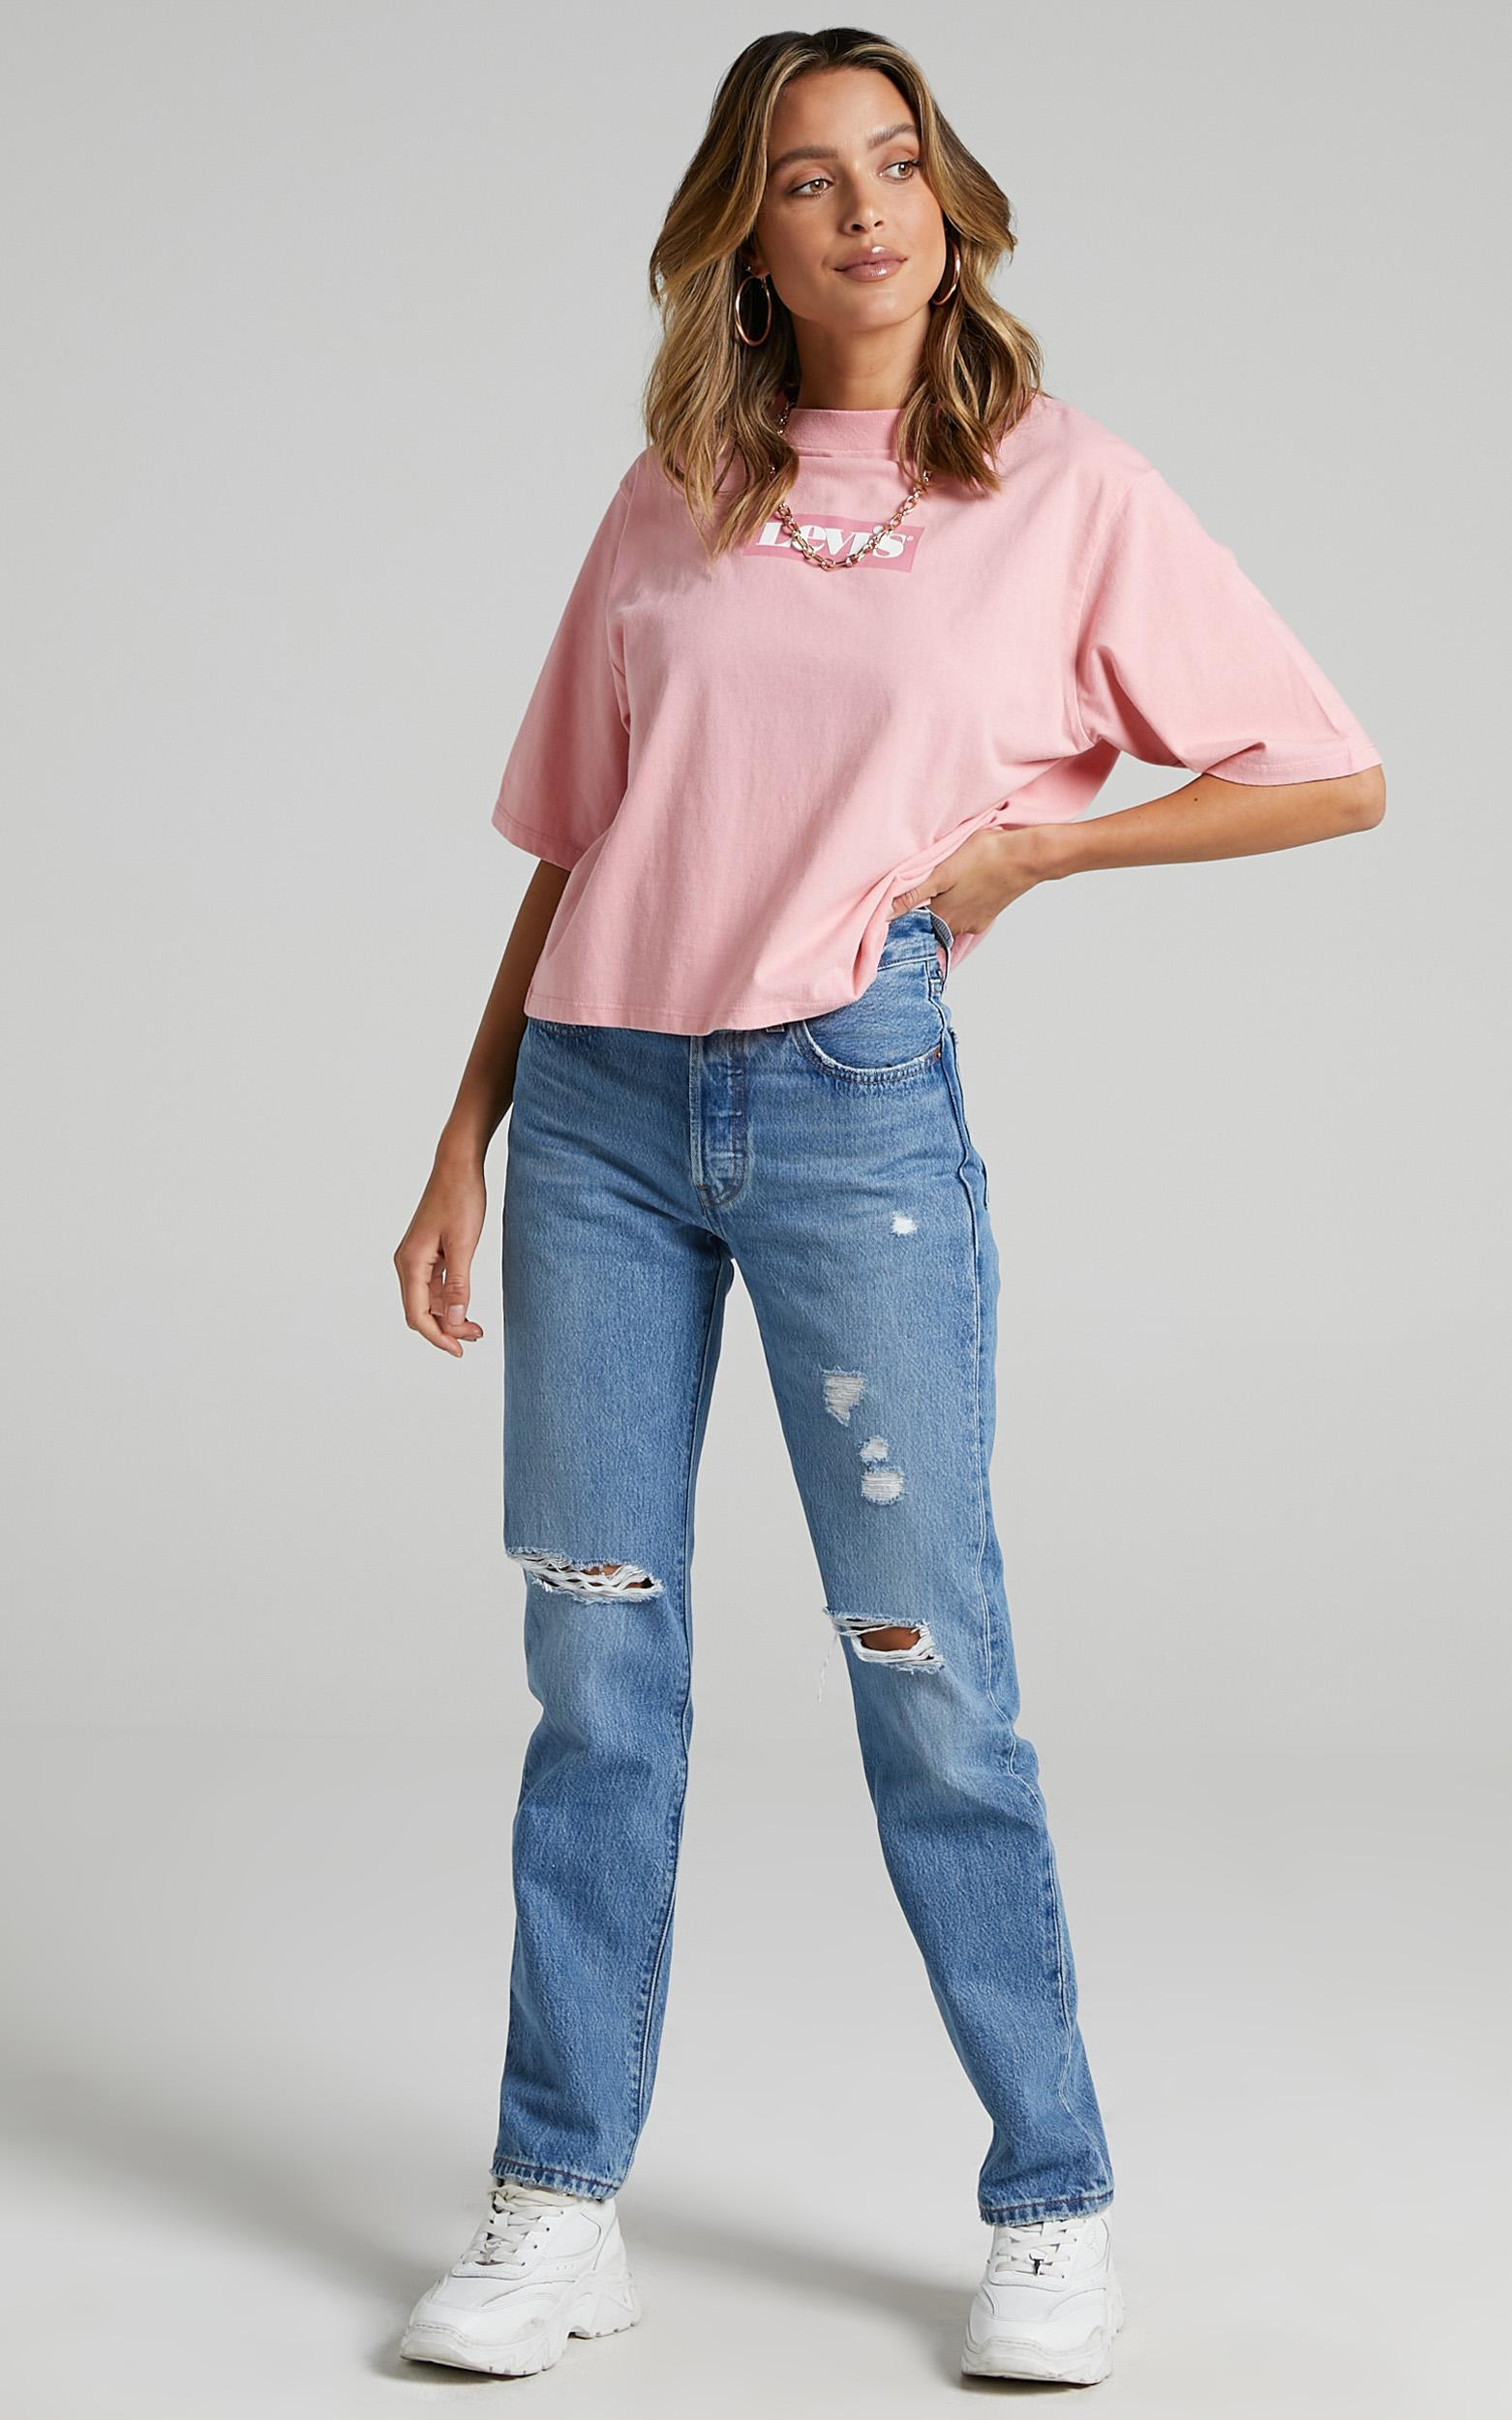 Levis - Heavyweight Box Logo Tee in Peony - 6 (XS), Pink, hi-res image number null